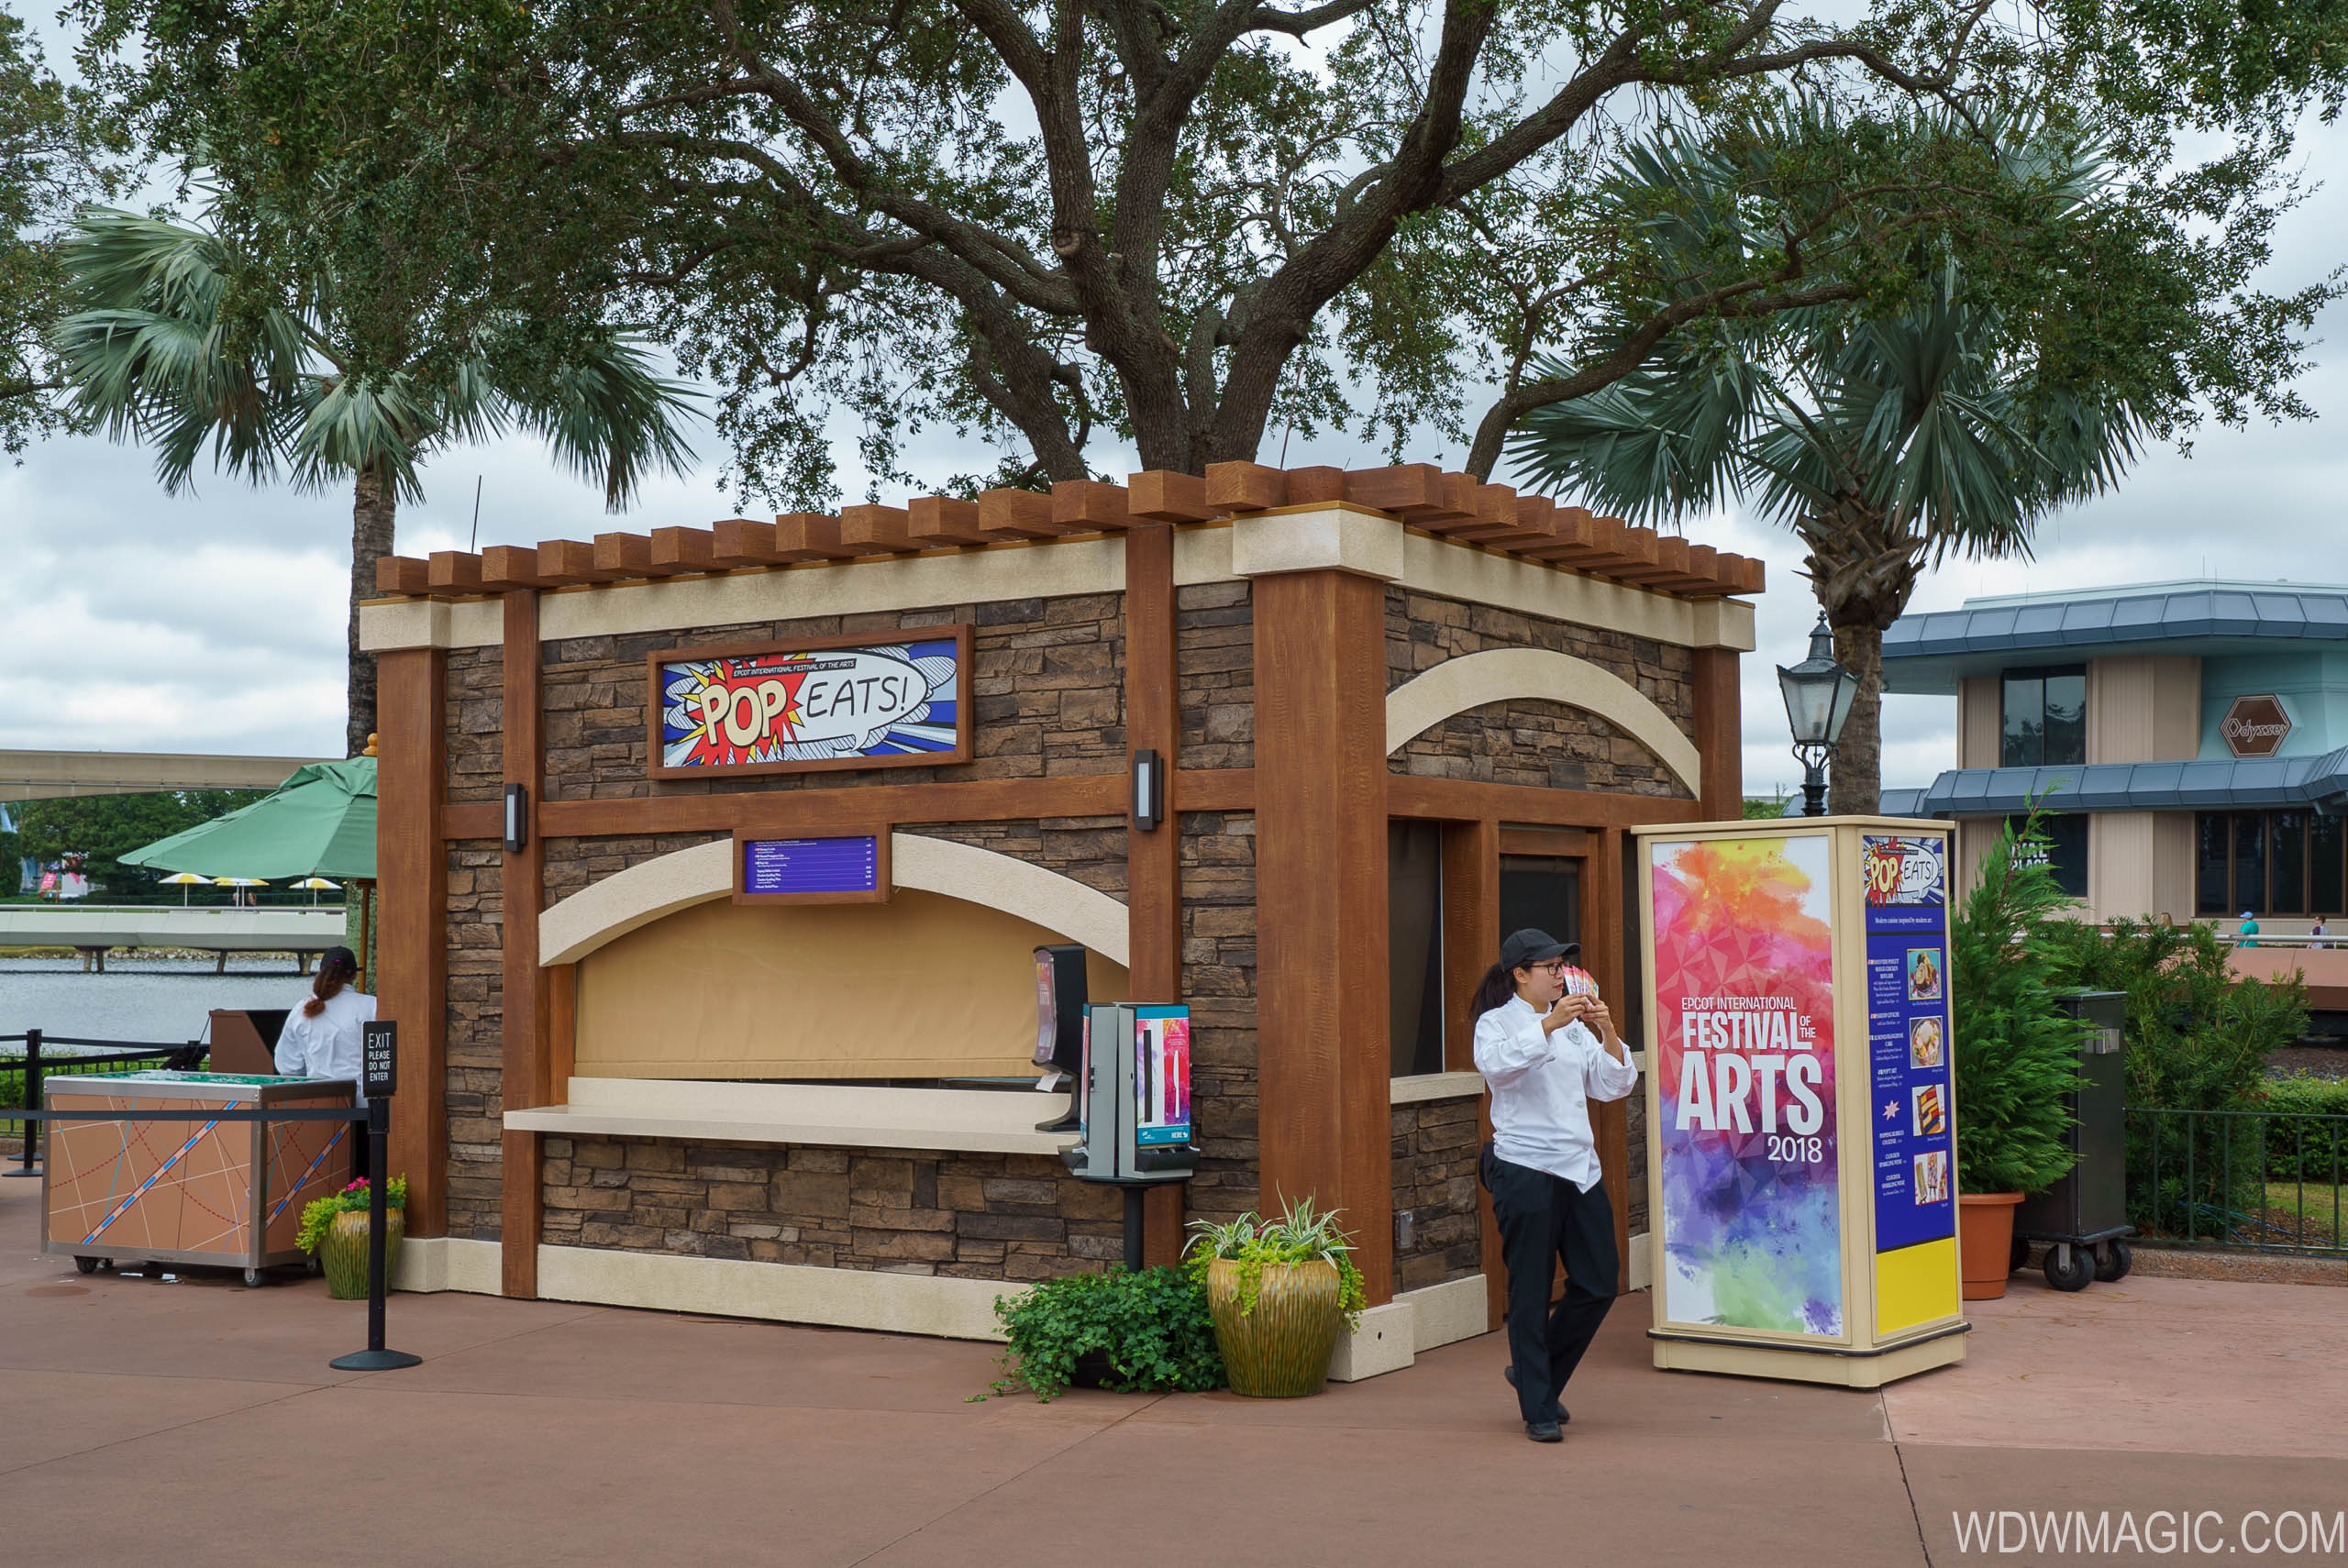 2018 Epcot Festival of the Arts - Pop Eats! kiosk